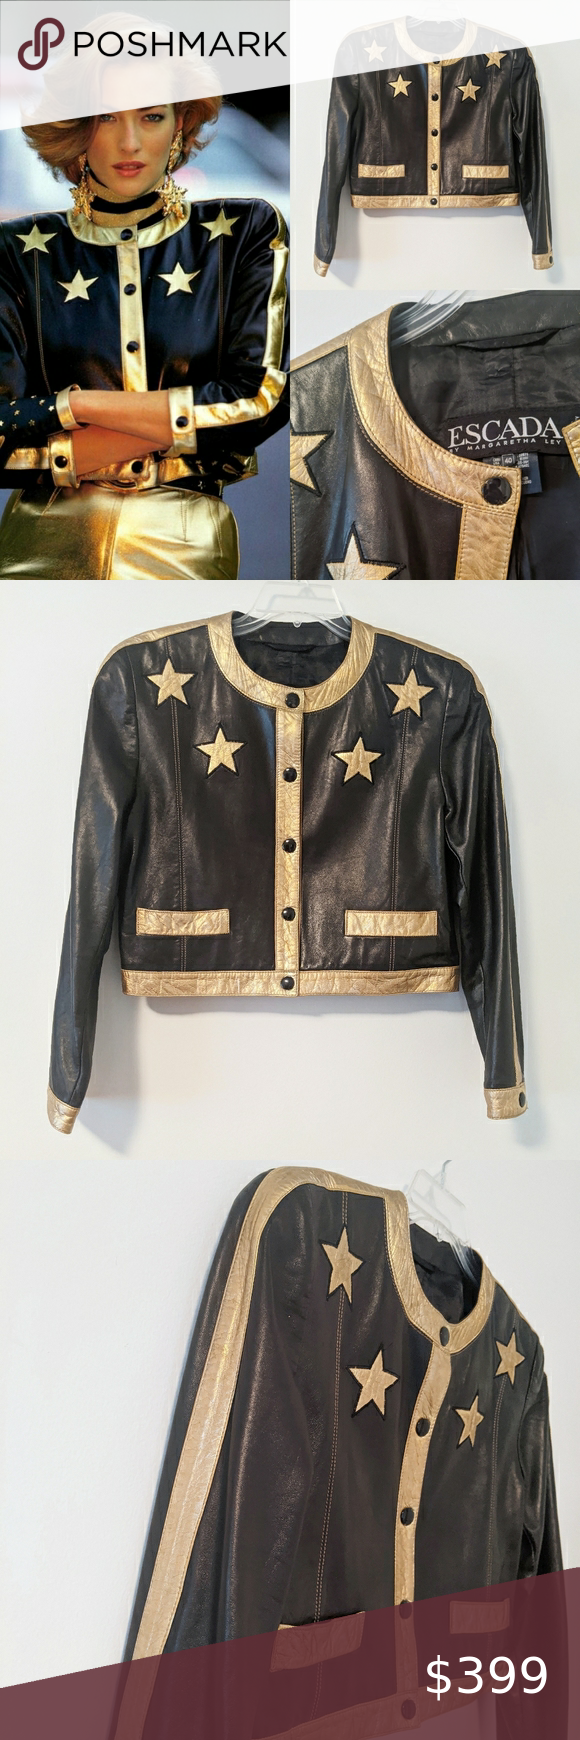 Vintage Escada Gold Star Cropped Leather Jacket Cropped Leather Jacket Vintage Leather Jacket Purple Leather Jacket [ 1740 x 580 Pixel ]